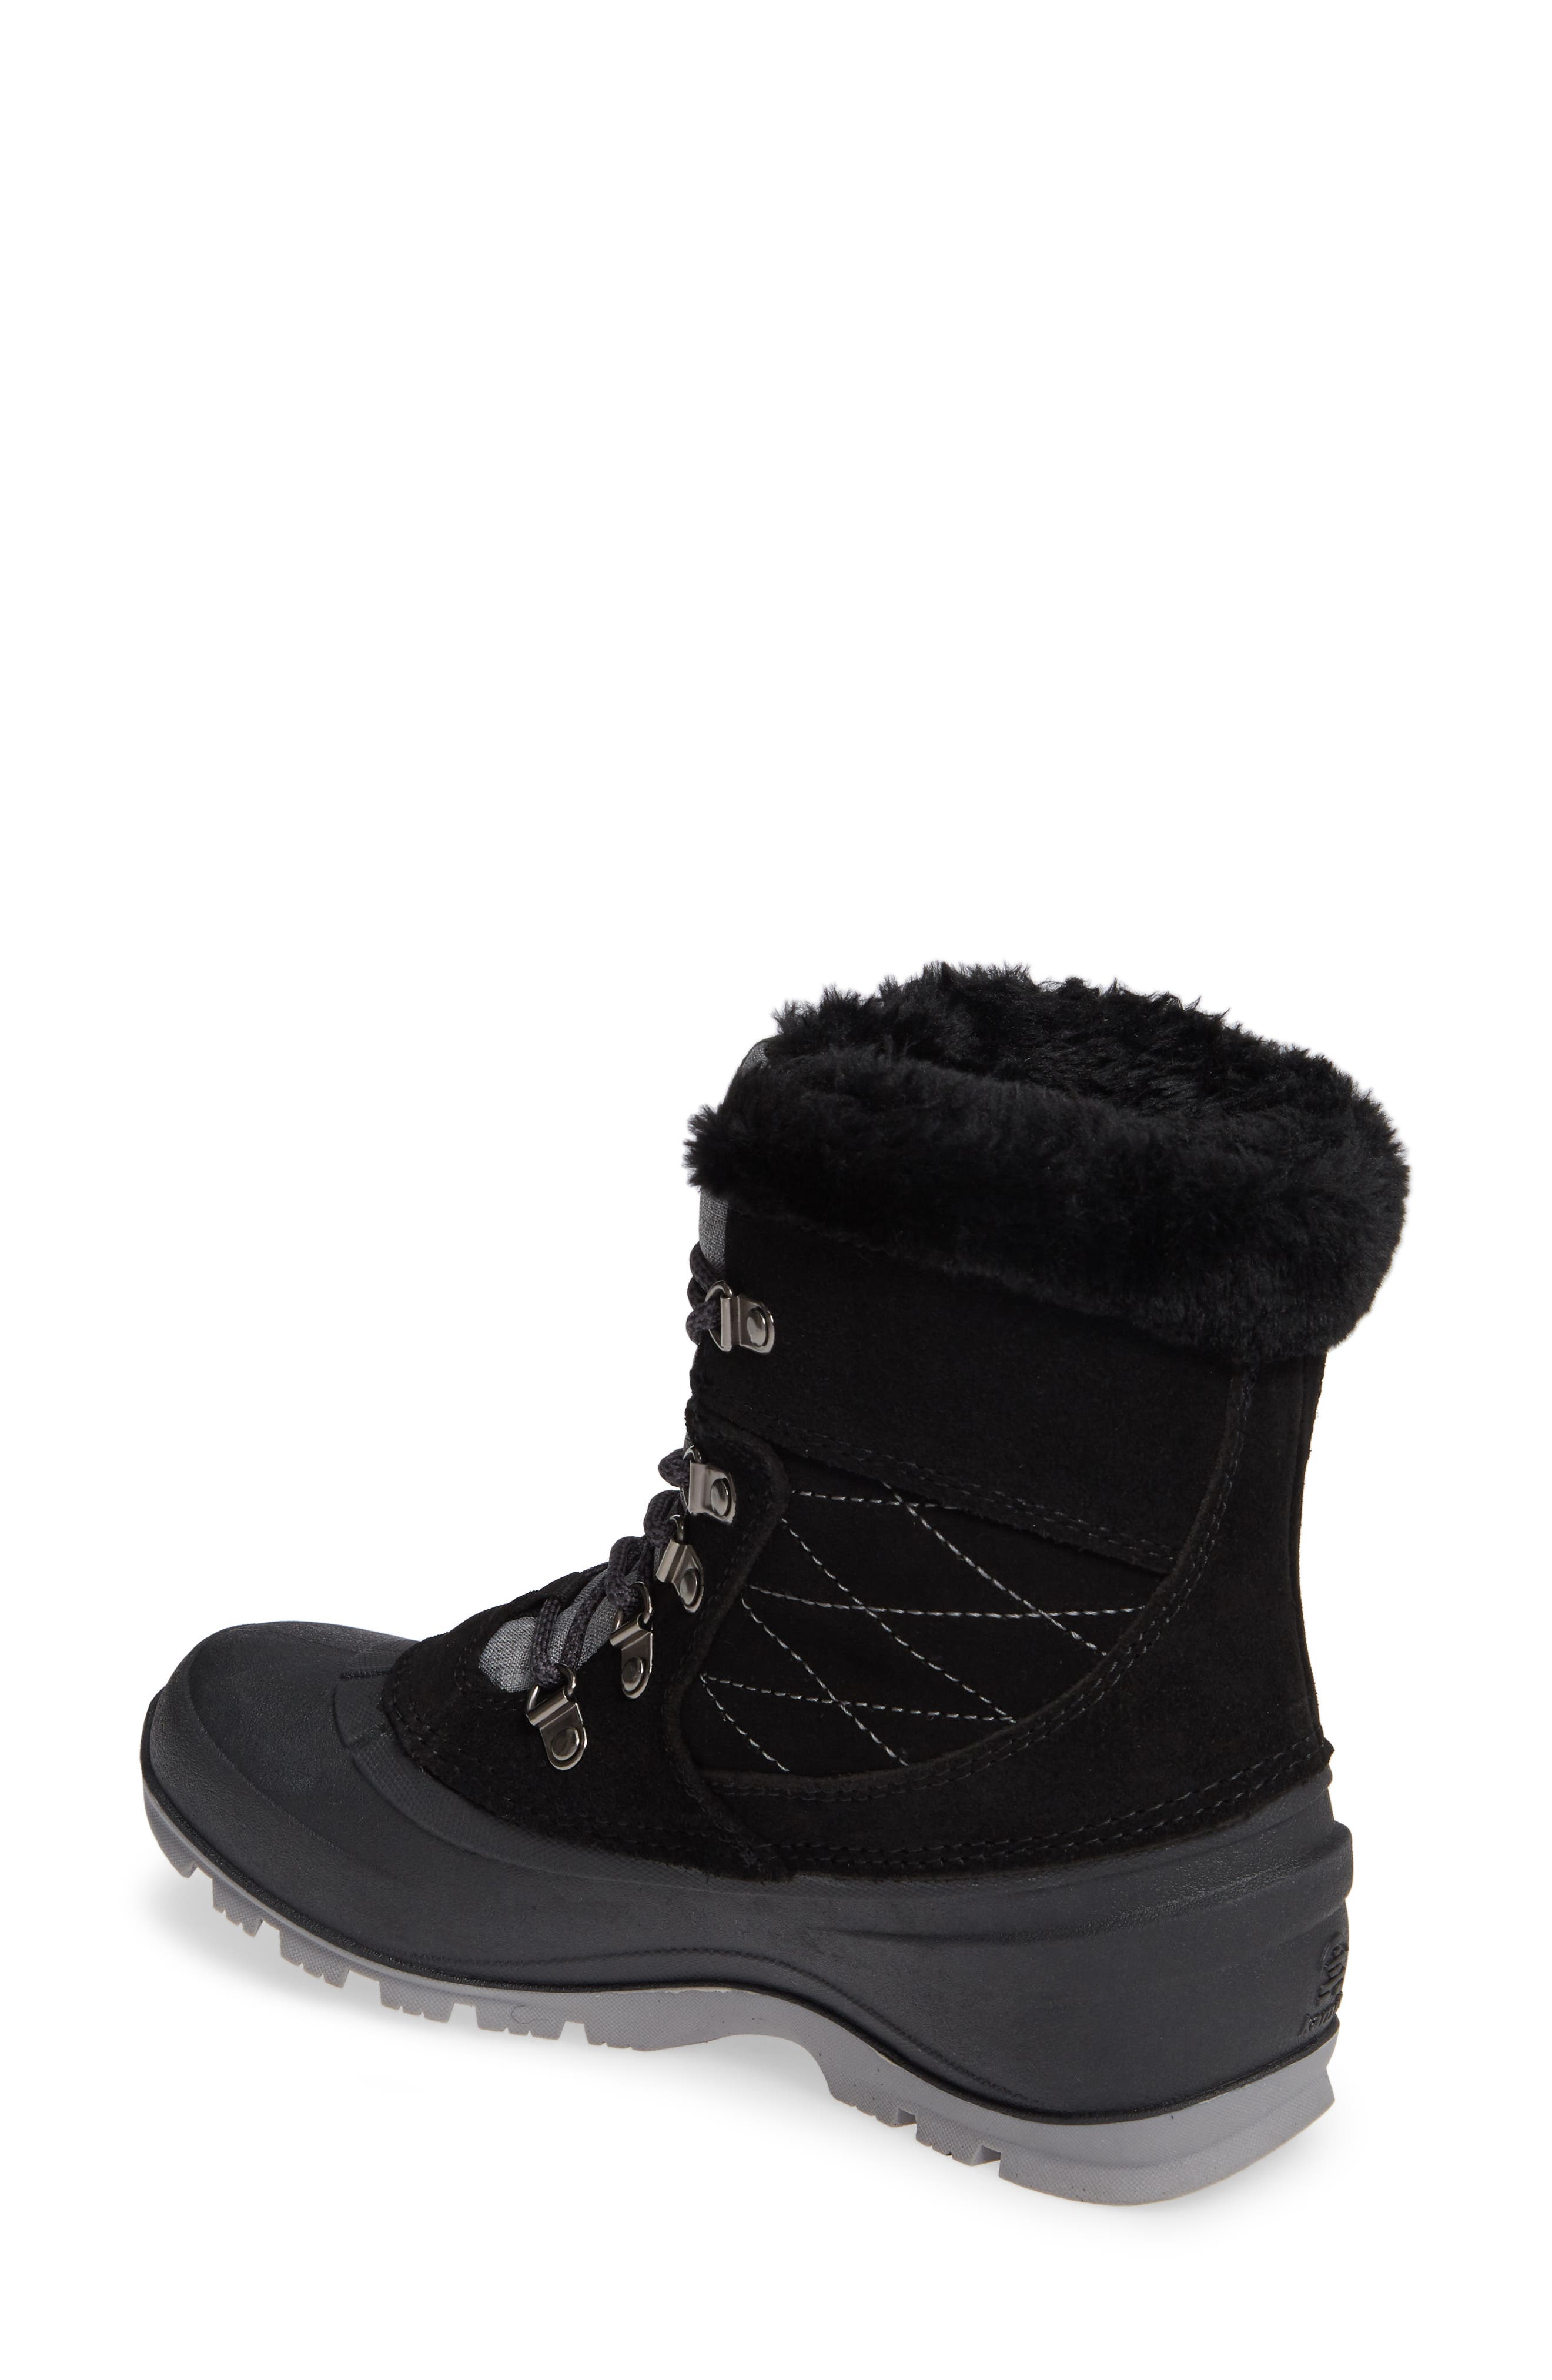 KAMIK, Snovalley1 Waterproof Thinsulate<sup>®</sup> Insulated Snow Boot, Alternate thumbnail 2, color, 001